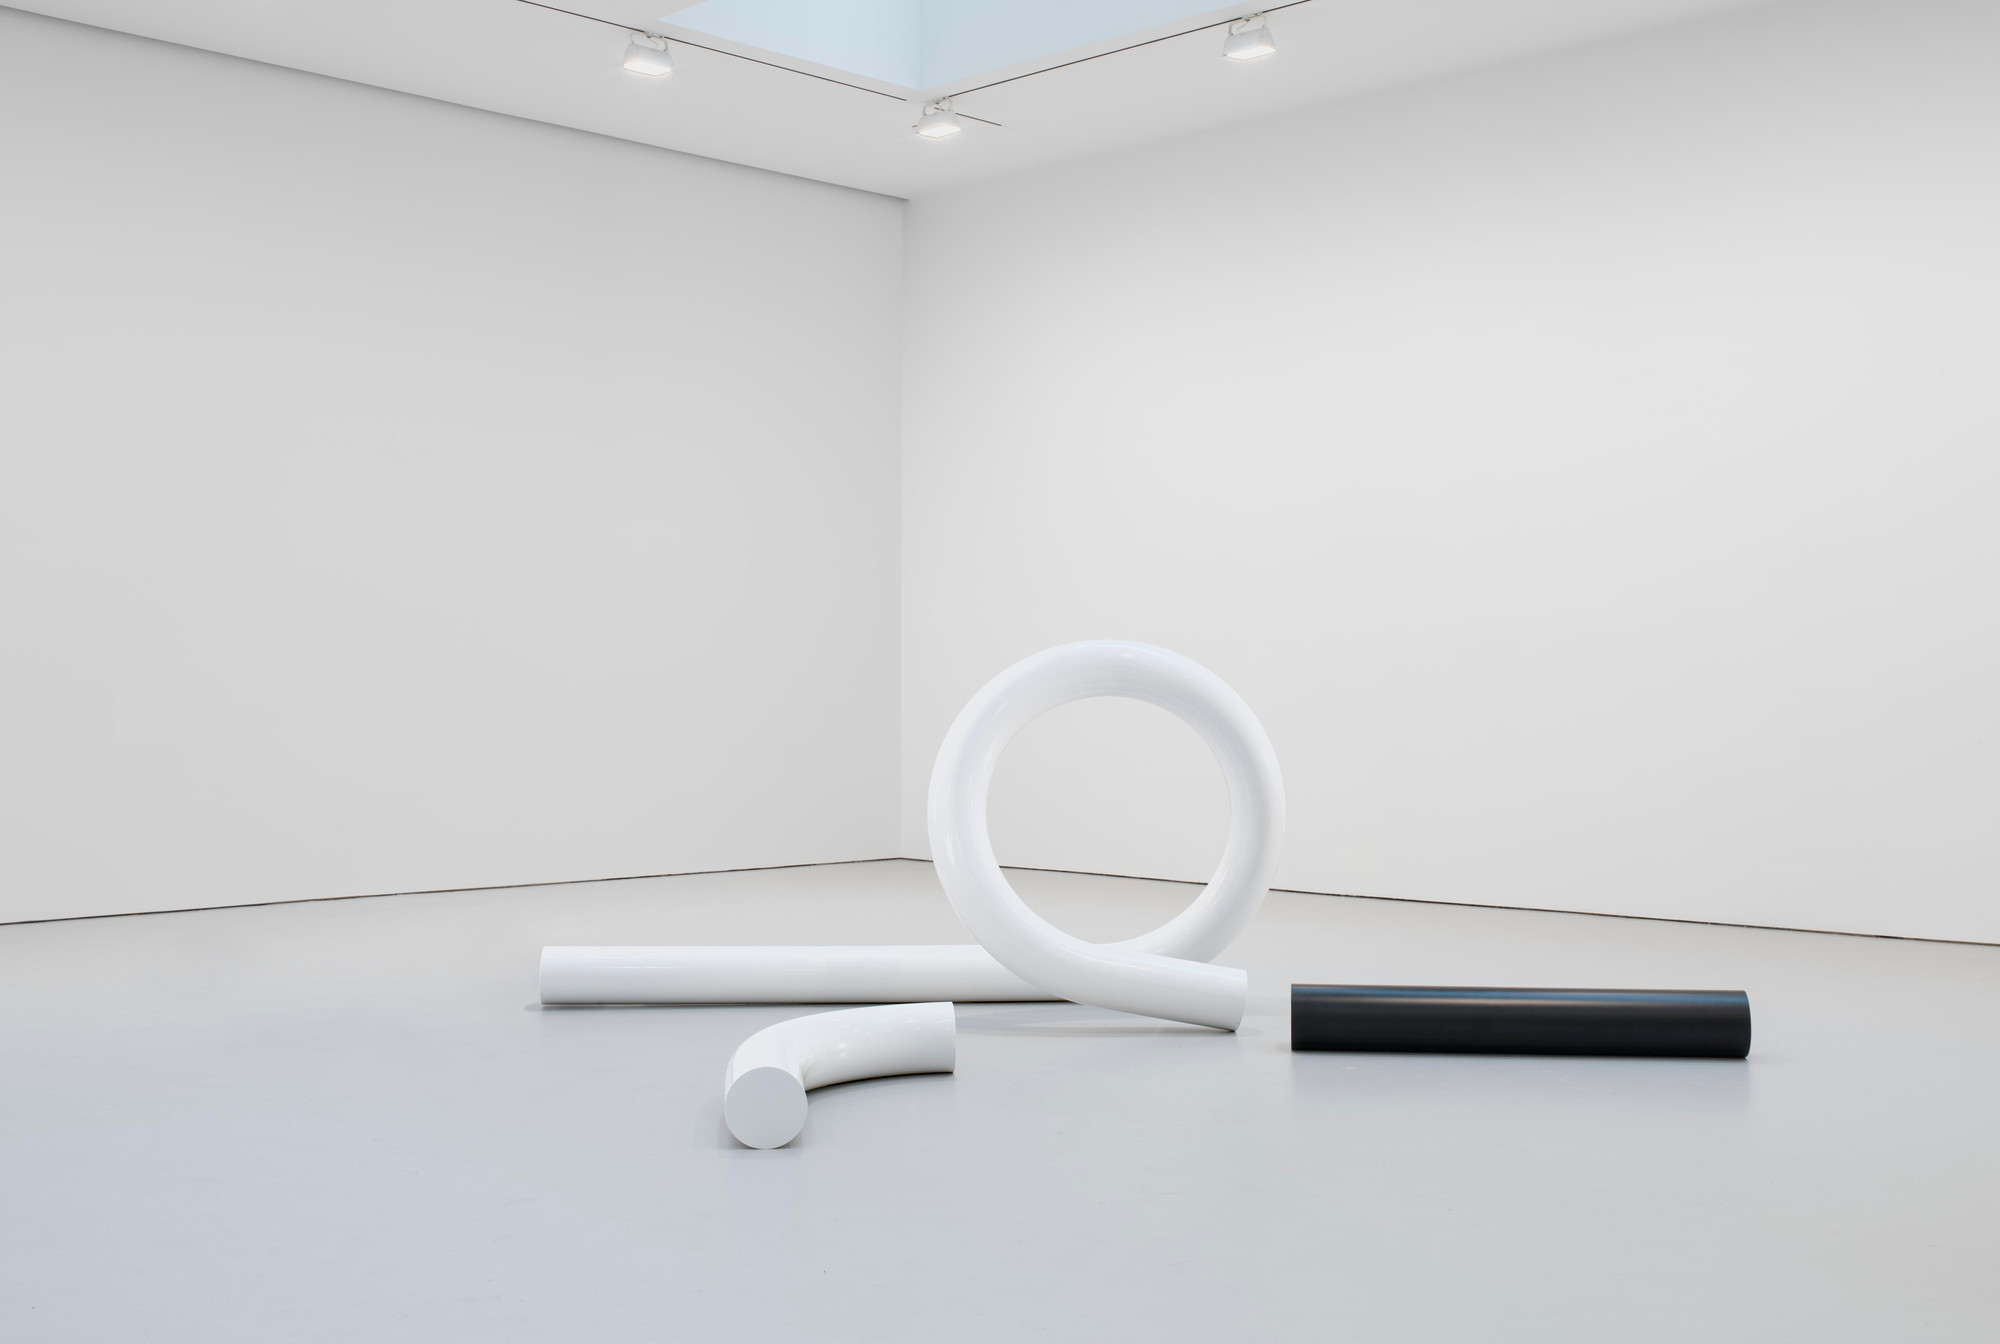 Carol Bove. The White Tubular Glyph. 2012. Powder coated bent steel, dimensions variable. Photos by EPW Studio/Maris Hutchinson. Courtesy of the artist, Maccarone New York, and David Zwirner New York/London